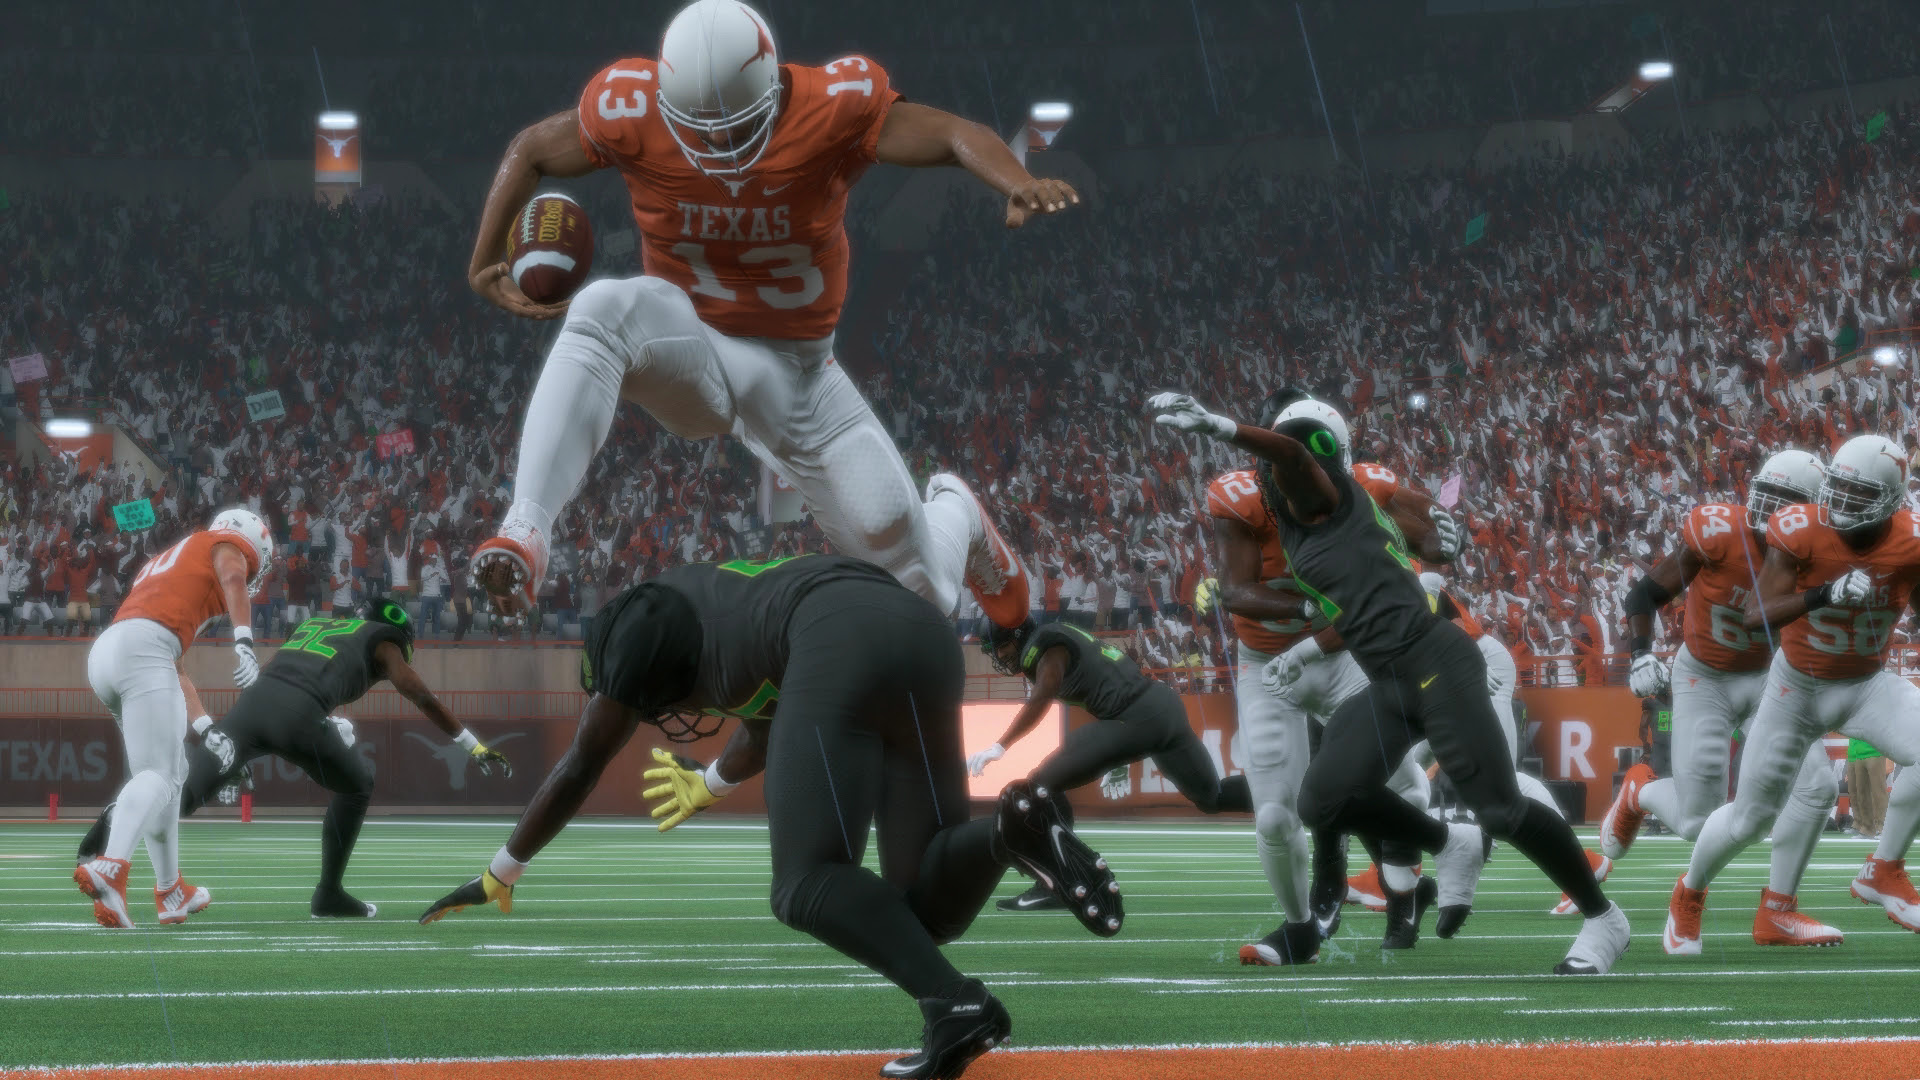 Madden NFL 18 review: New story mode injects drama into game  NFL  Sporting News